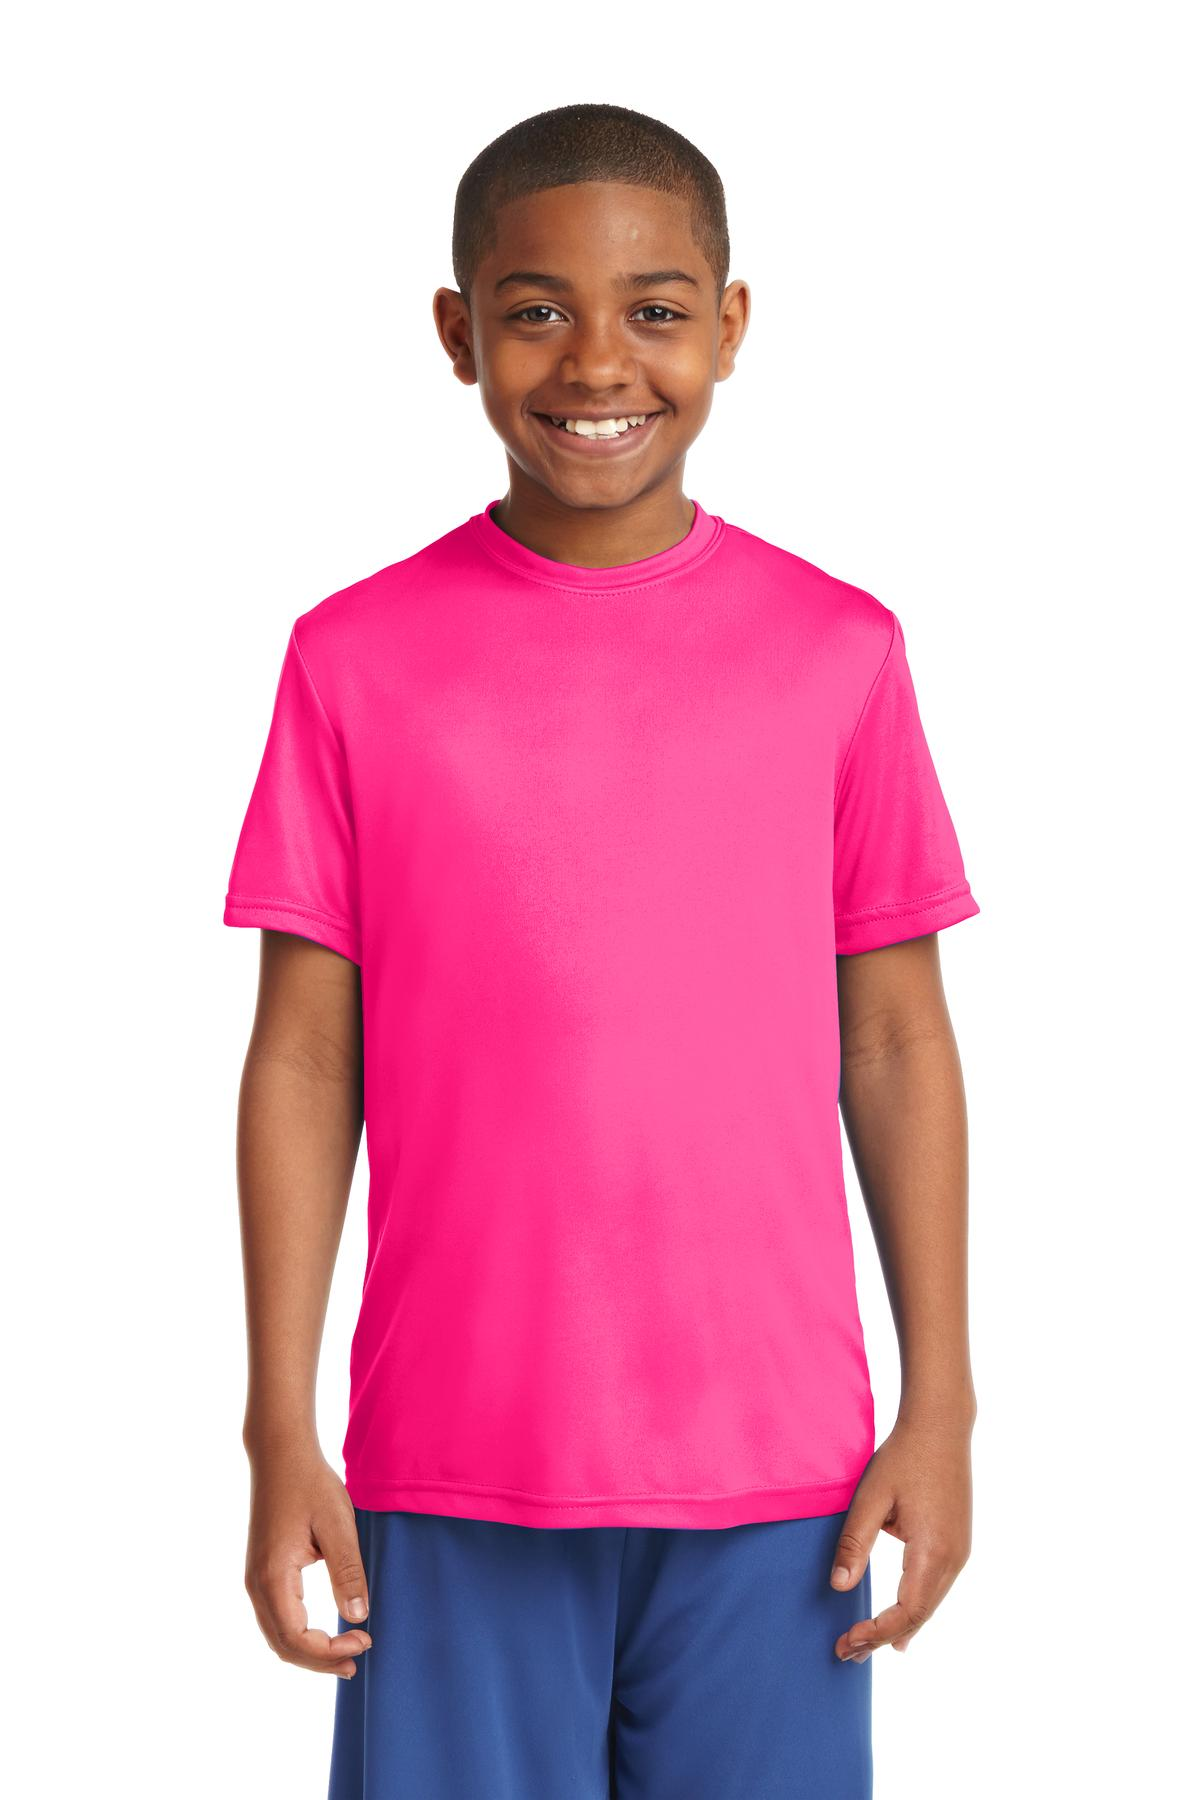 Sport-Tek ®  Youth PosiCharge ®  Competitor™ Tee. YST350 - Neon Pink